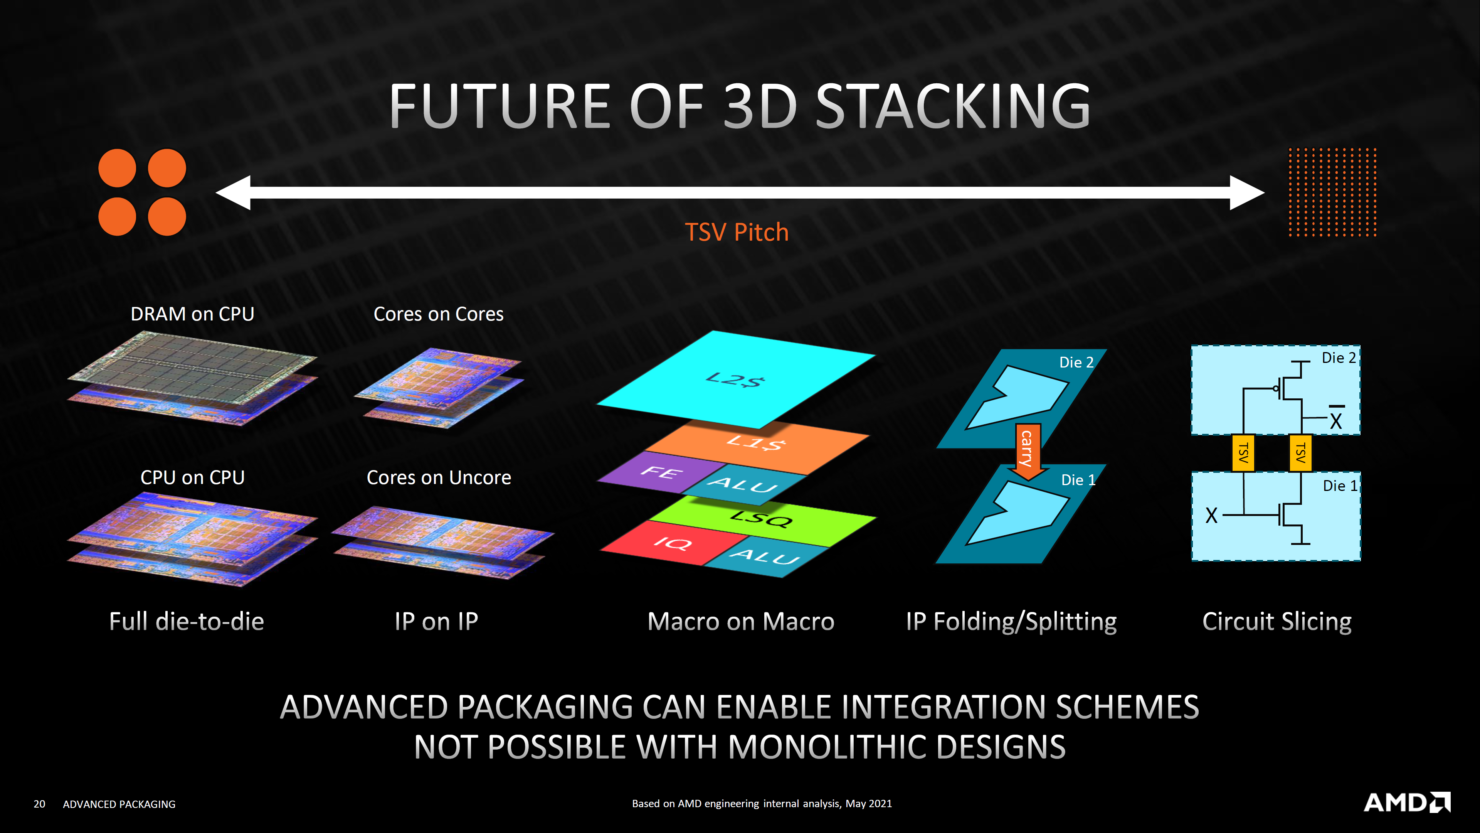 amd-advanced-3d-chiplet-packaging-3d-stacking-technologies-3d-v-cache-_19